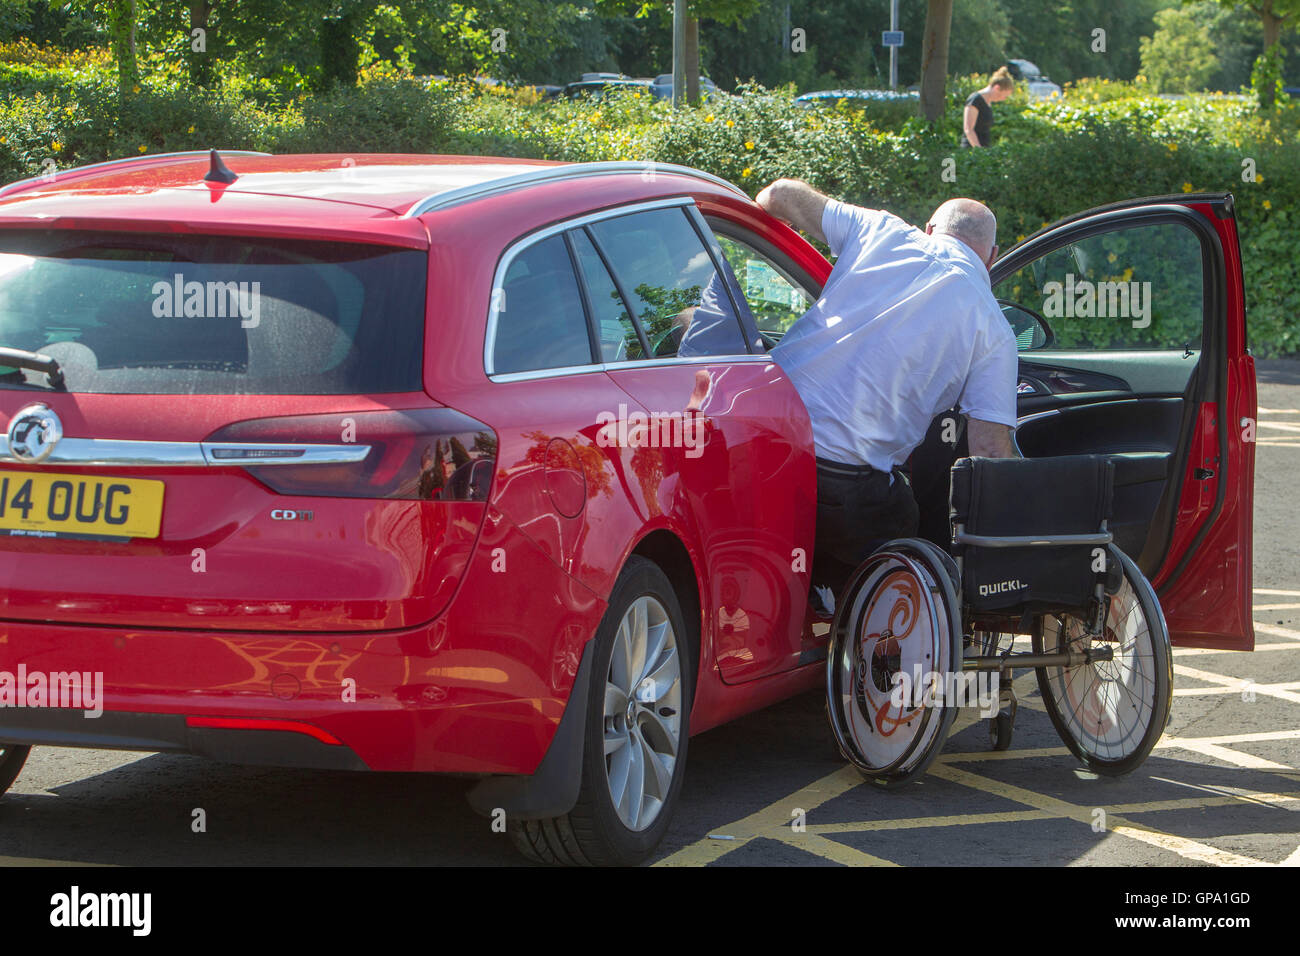 Disabled person using public transport - Stock Image